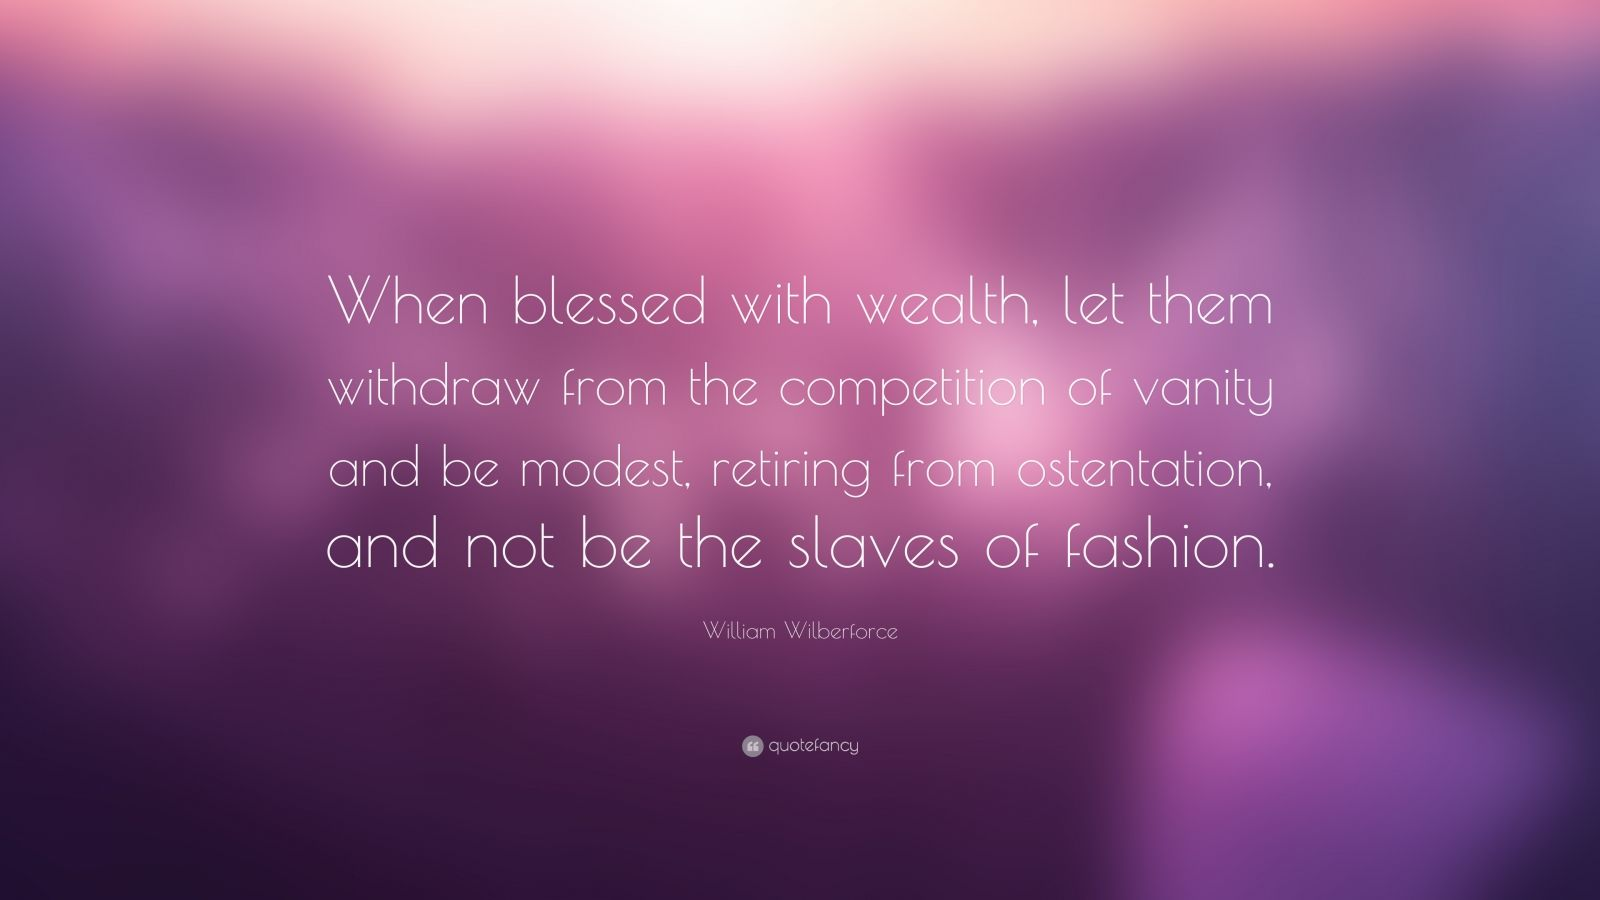 """William Wilberforce Quote: """"When blessed with wealth, let them withdraw from the competition of vanity and be modest, retiring from ostentation, and not be the slaves of fashion."""""""